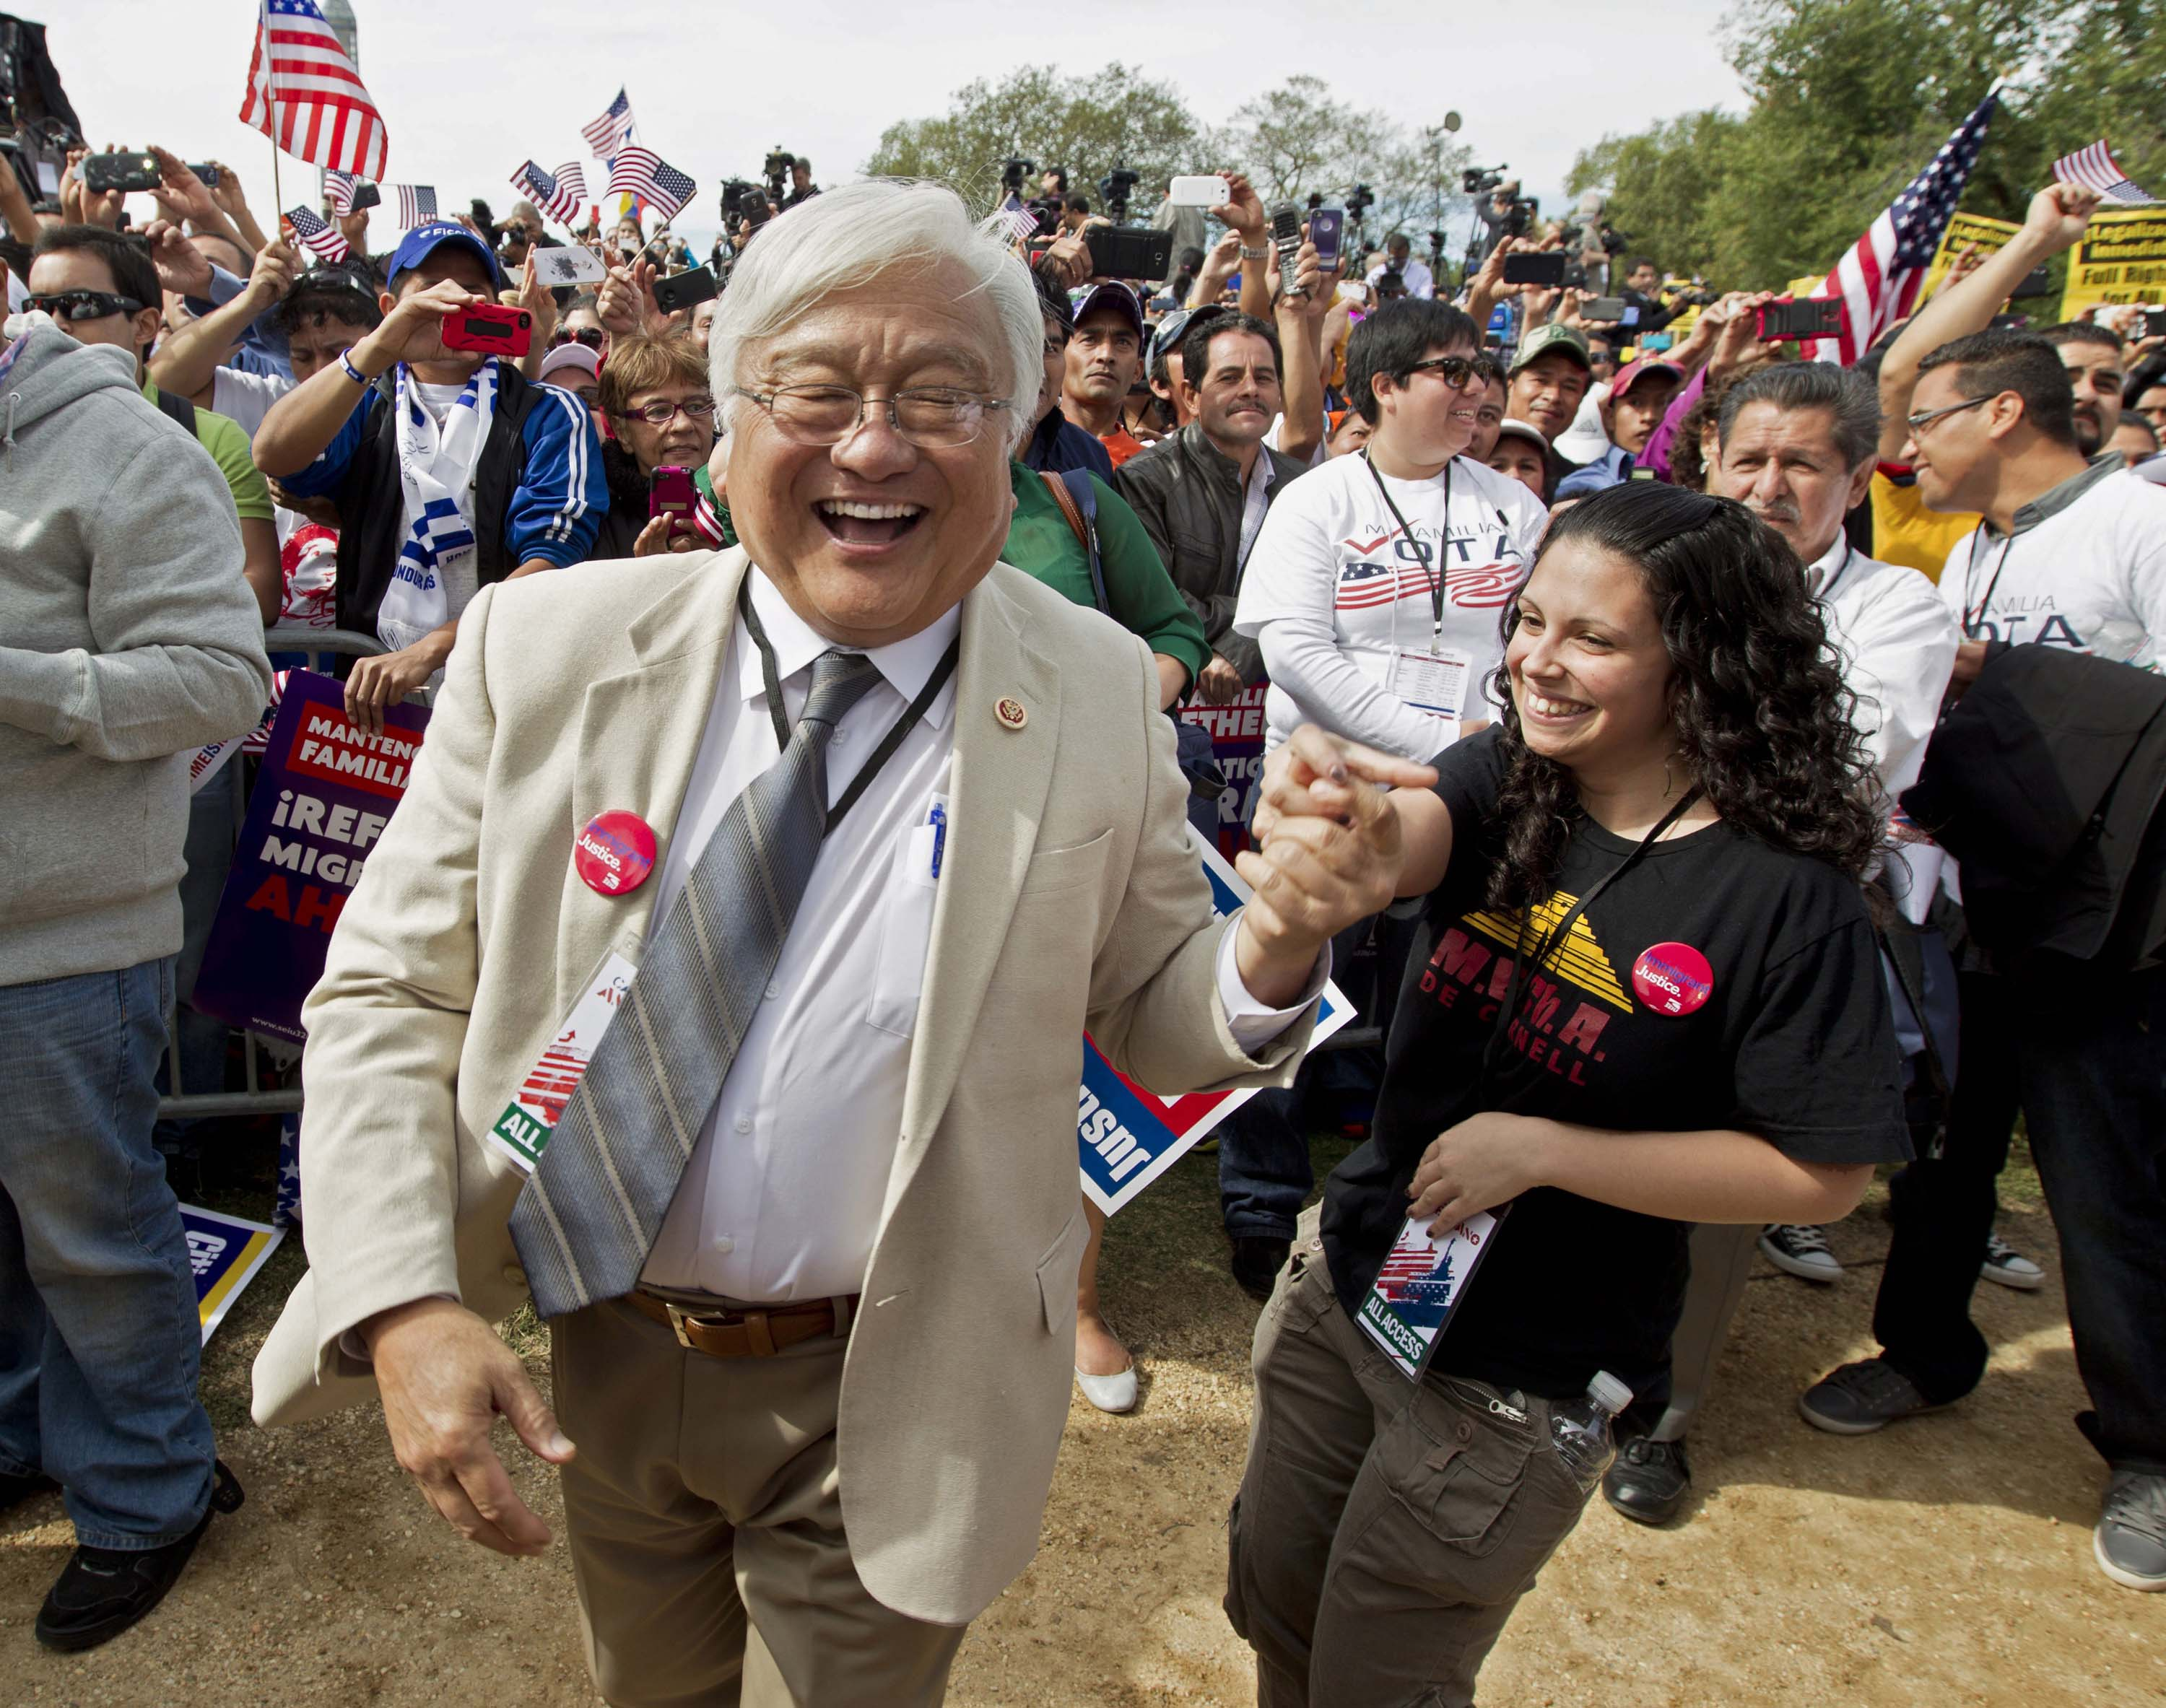 Liberal lion Mike Honda in D.C., where he has support from the Democratic establishment. He has served seven terms in Congress but faces challenges from within his own party